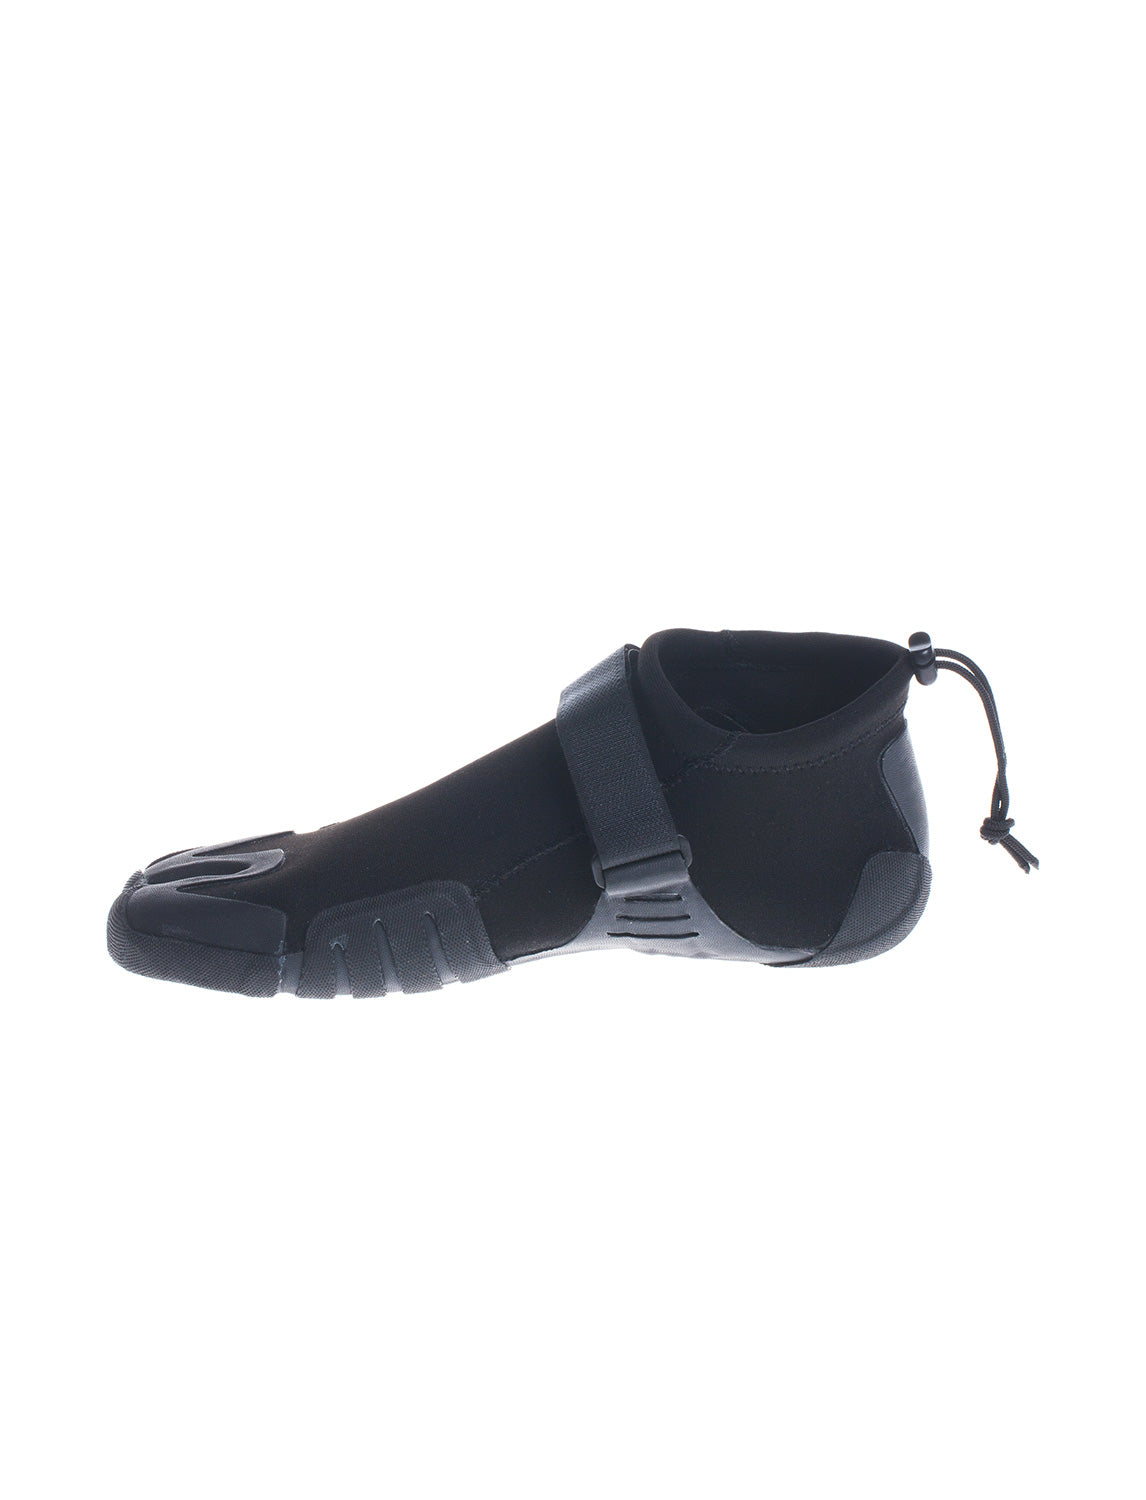 WIRED SPLIT TOE REEF BOOTS